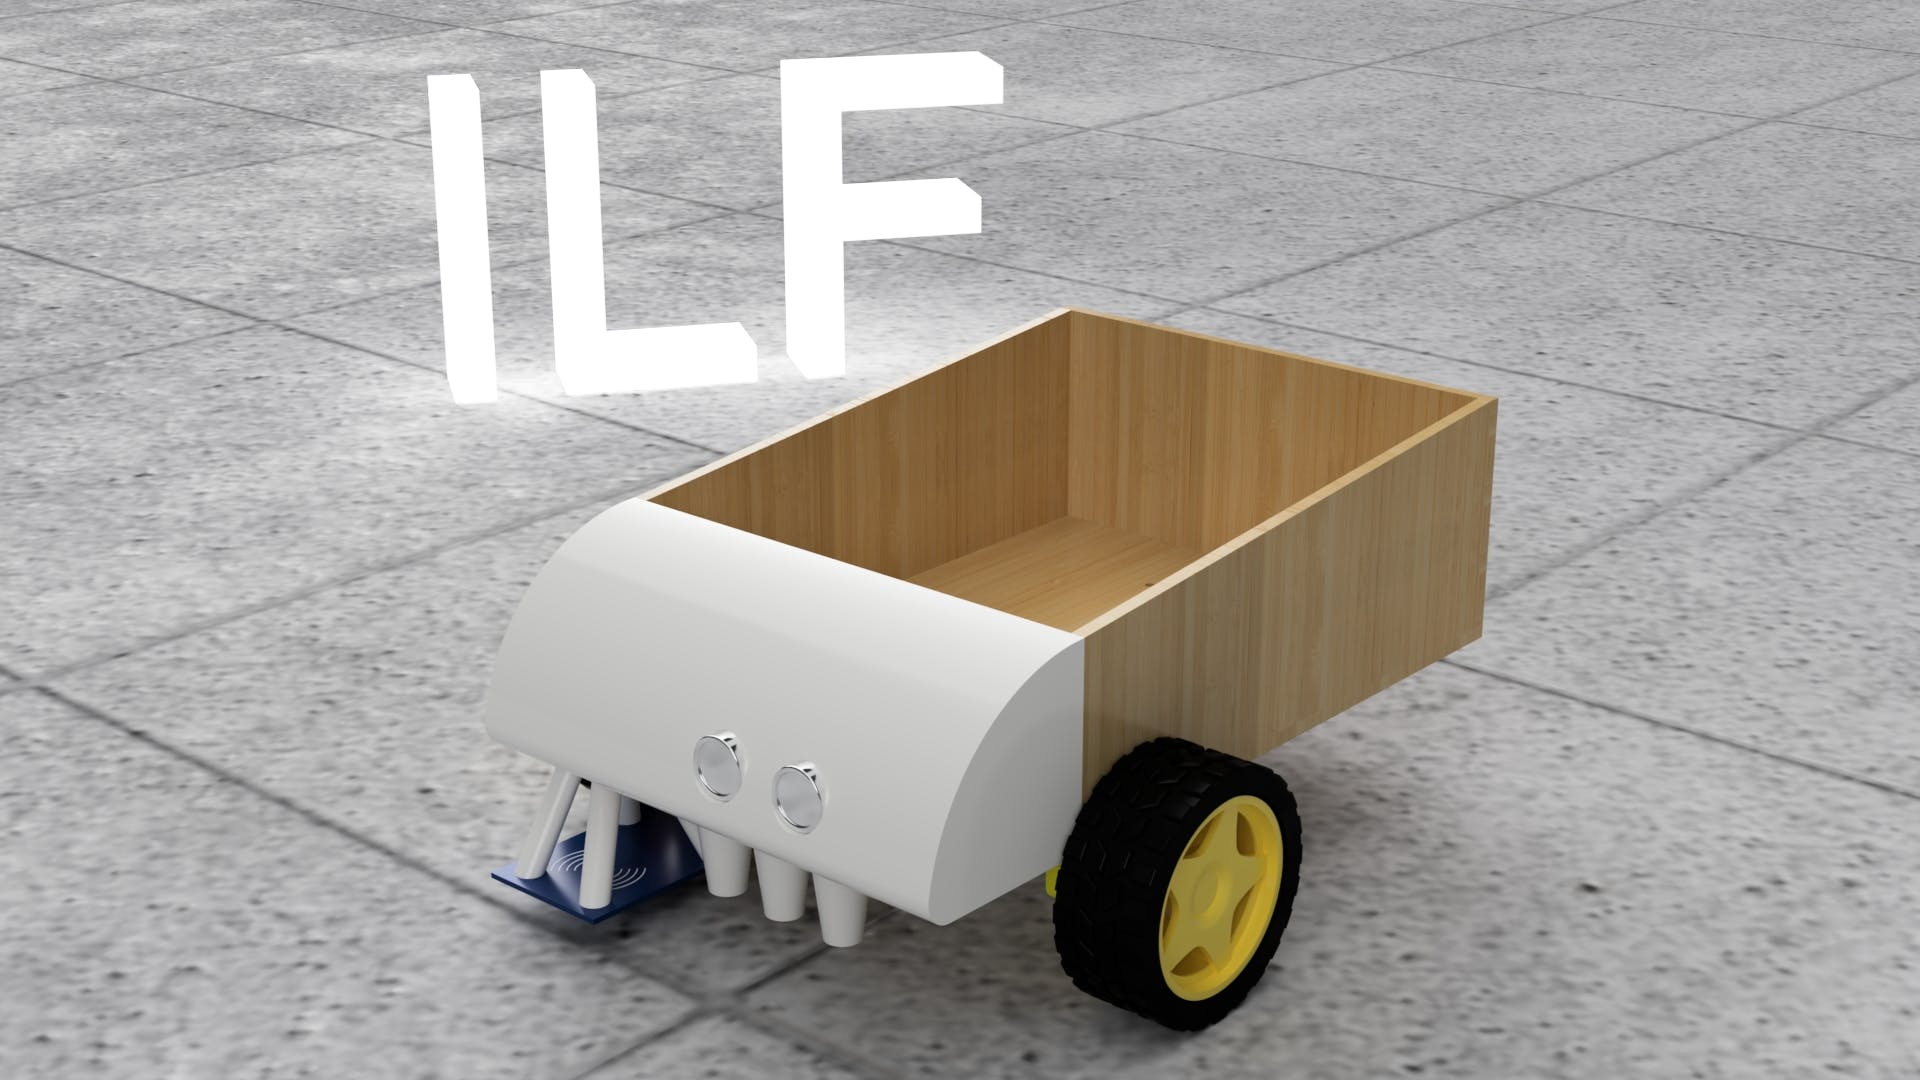 ILF is short for Industrial Line Follower, there are fingerjoints between wooden parts, but you can't see them on this render